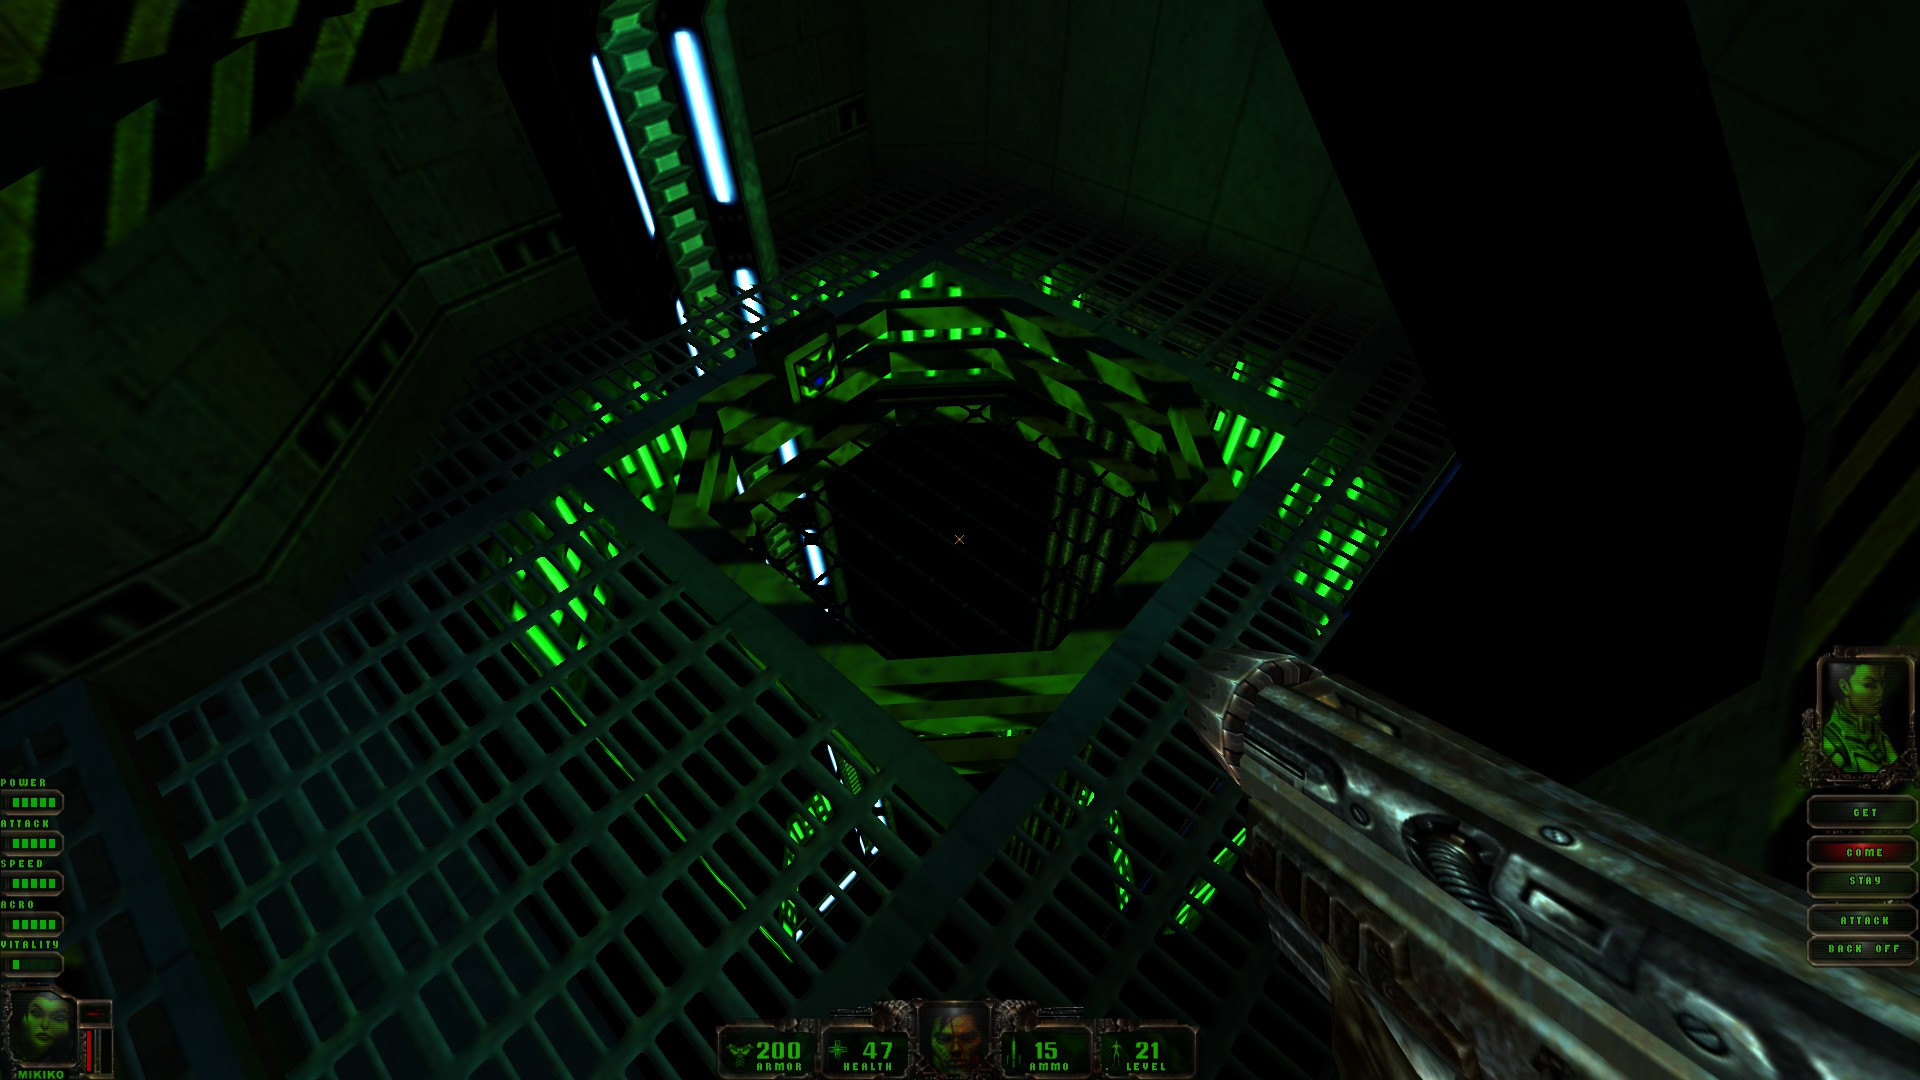 Steam Community Guide Basics Of Daikatana For The First Time Smart Fuse Box Wiki Example In Episode 4 Theres An Elevator Cart Shaft Military Research Base Thats Supposed To Be Protected By A Metal Grating